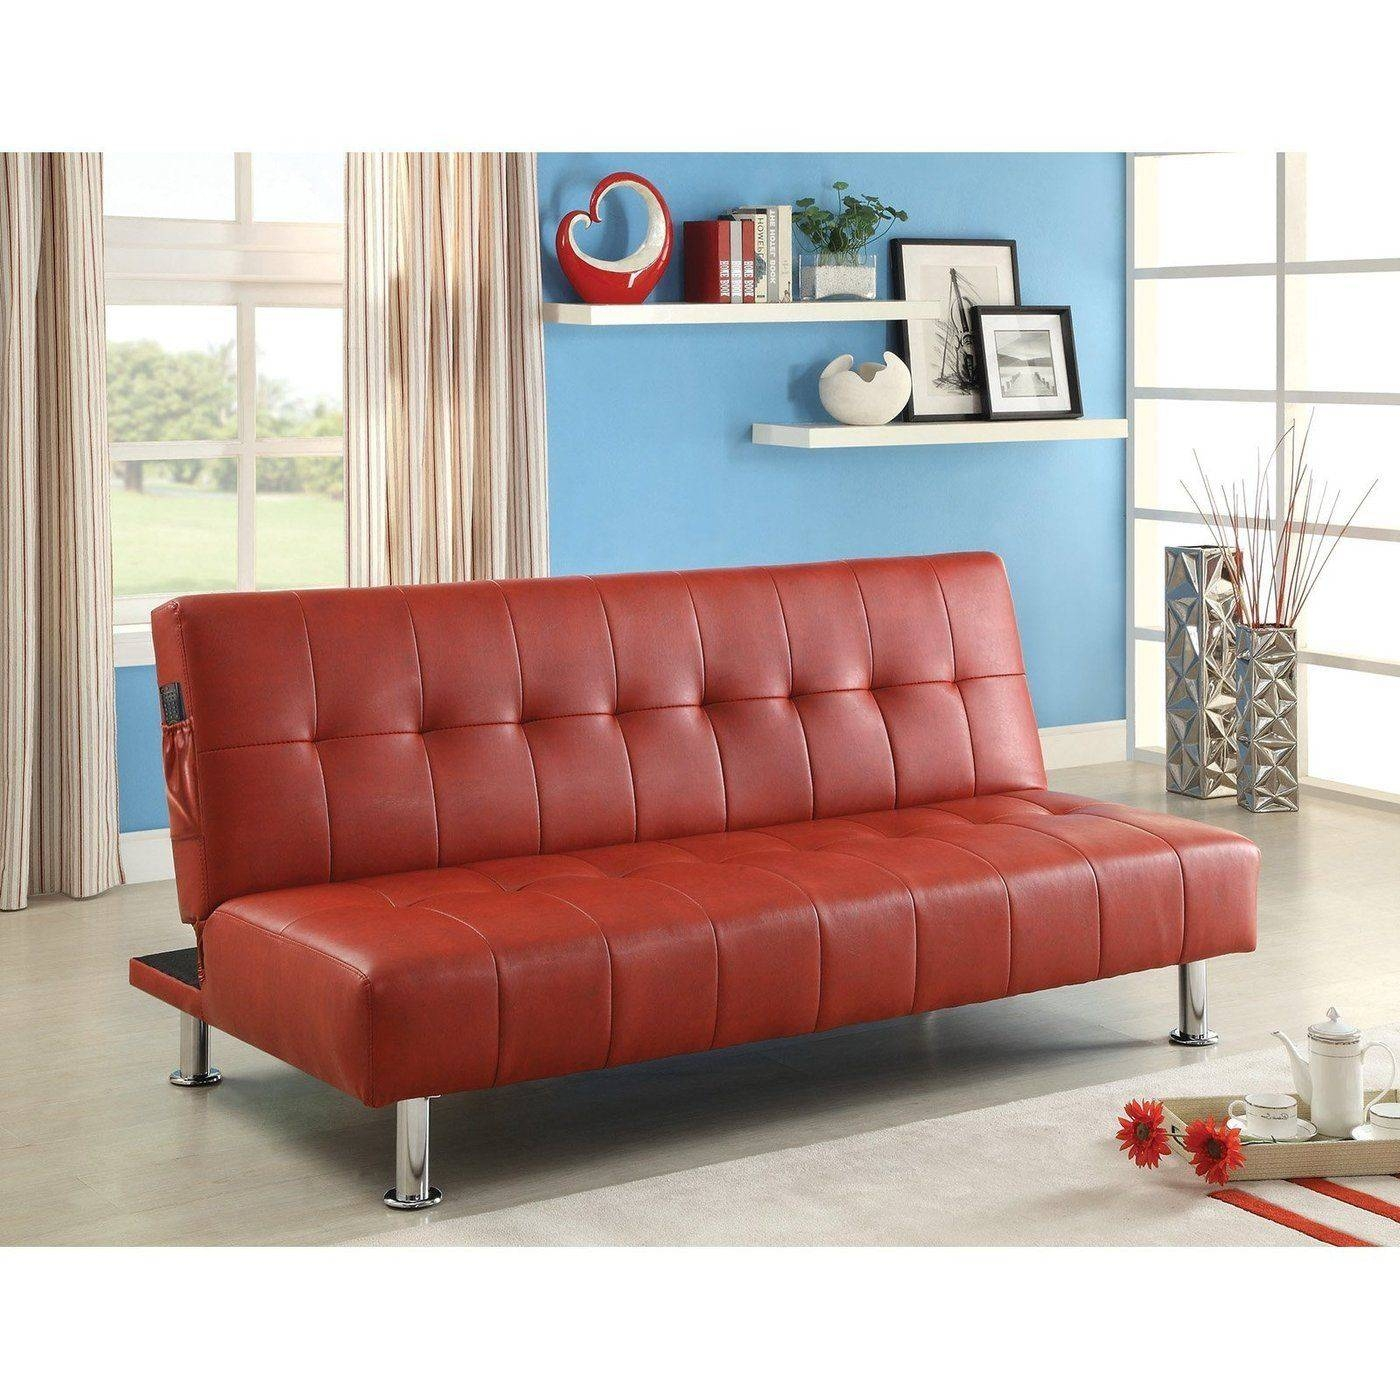 Sofas Center : Unusual Big Lots Sofa Images Design Furniture5 intended for Unusual Sofas (Image 12 of 25)